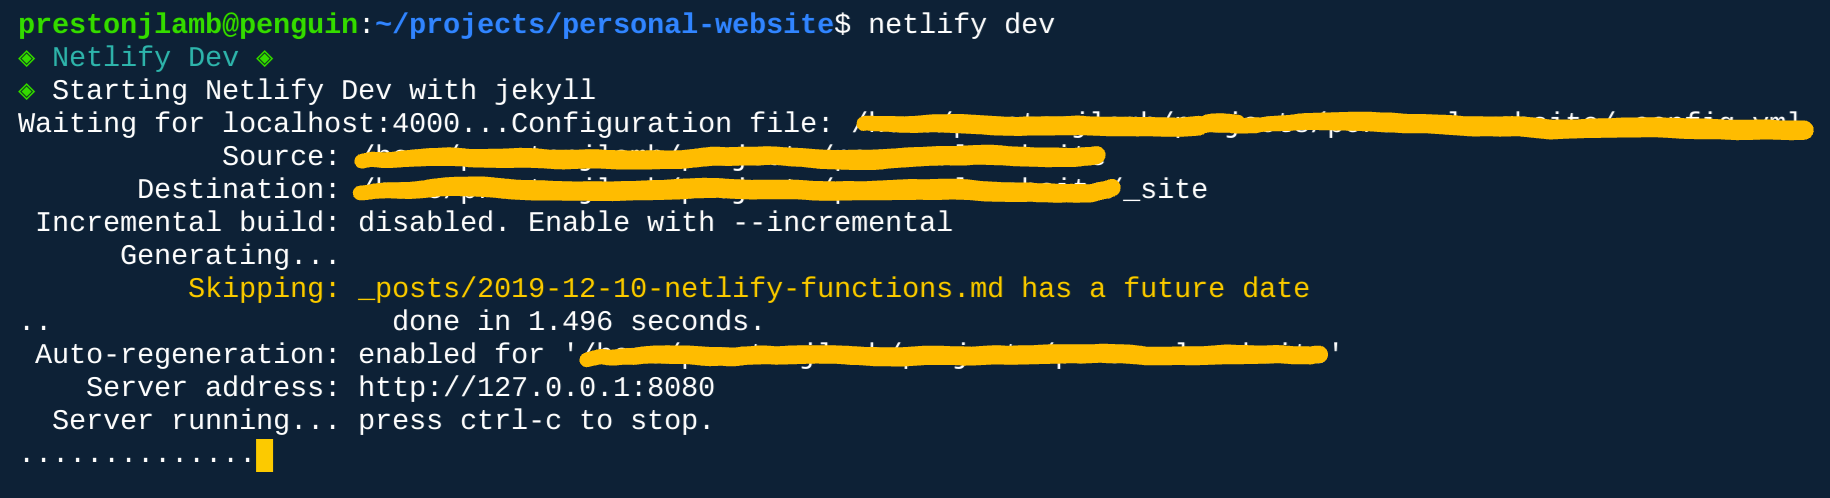 netlify dev command output